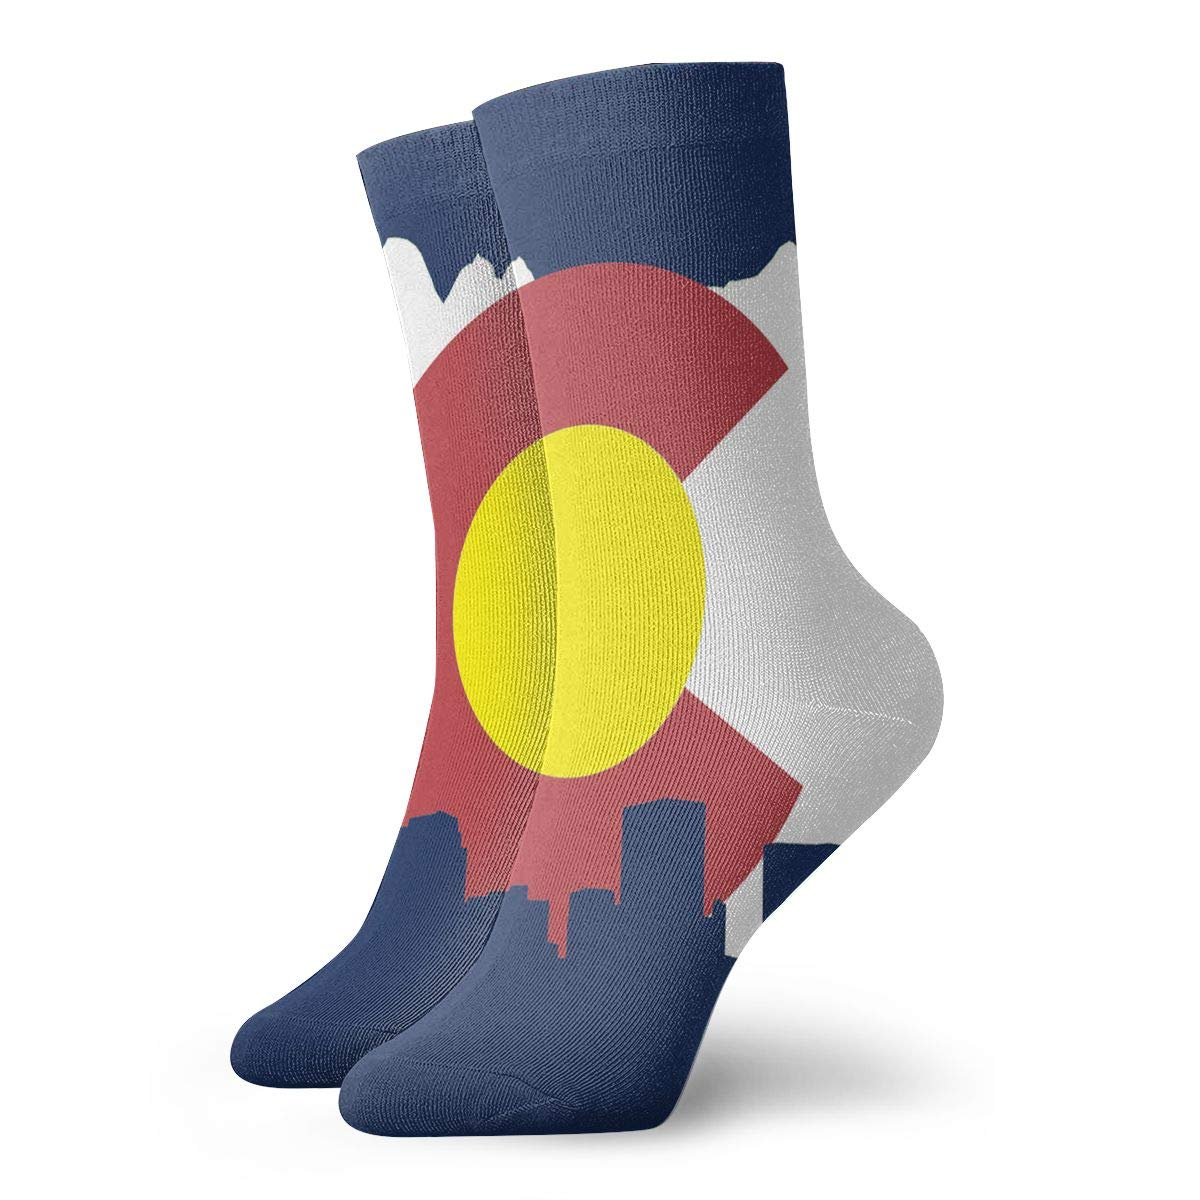 SESY Colorado Flag Unisex Crew Socks Short Sports Stocking